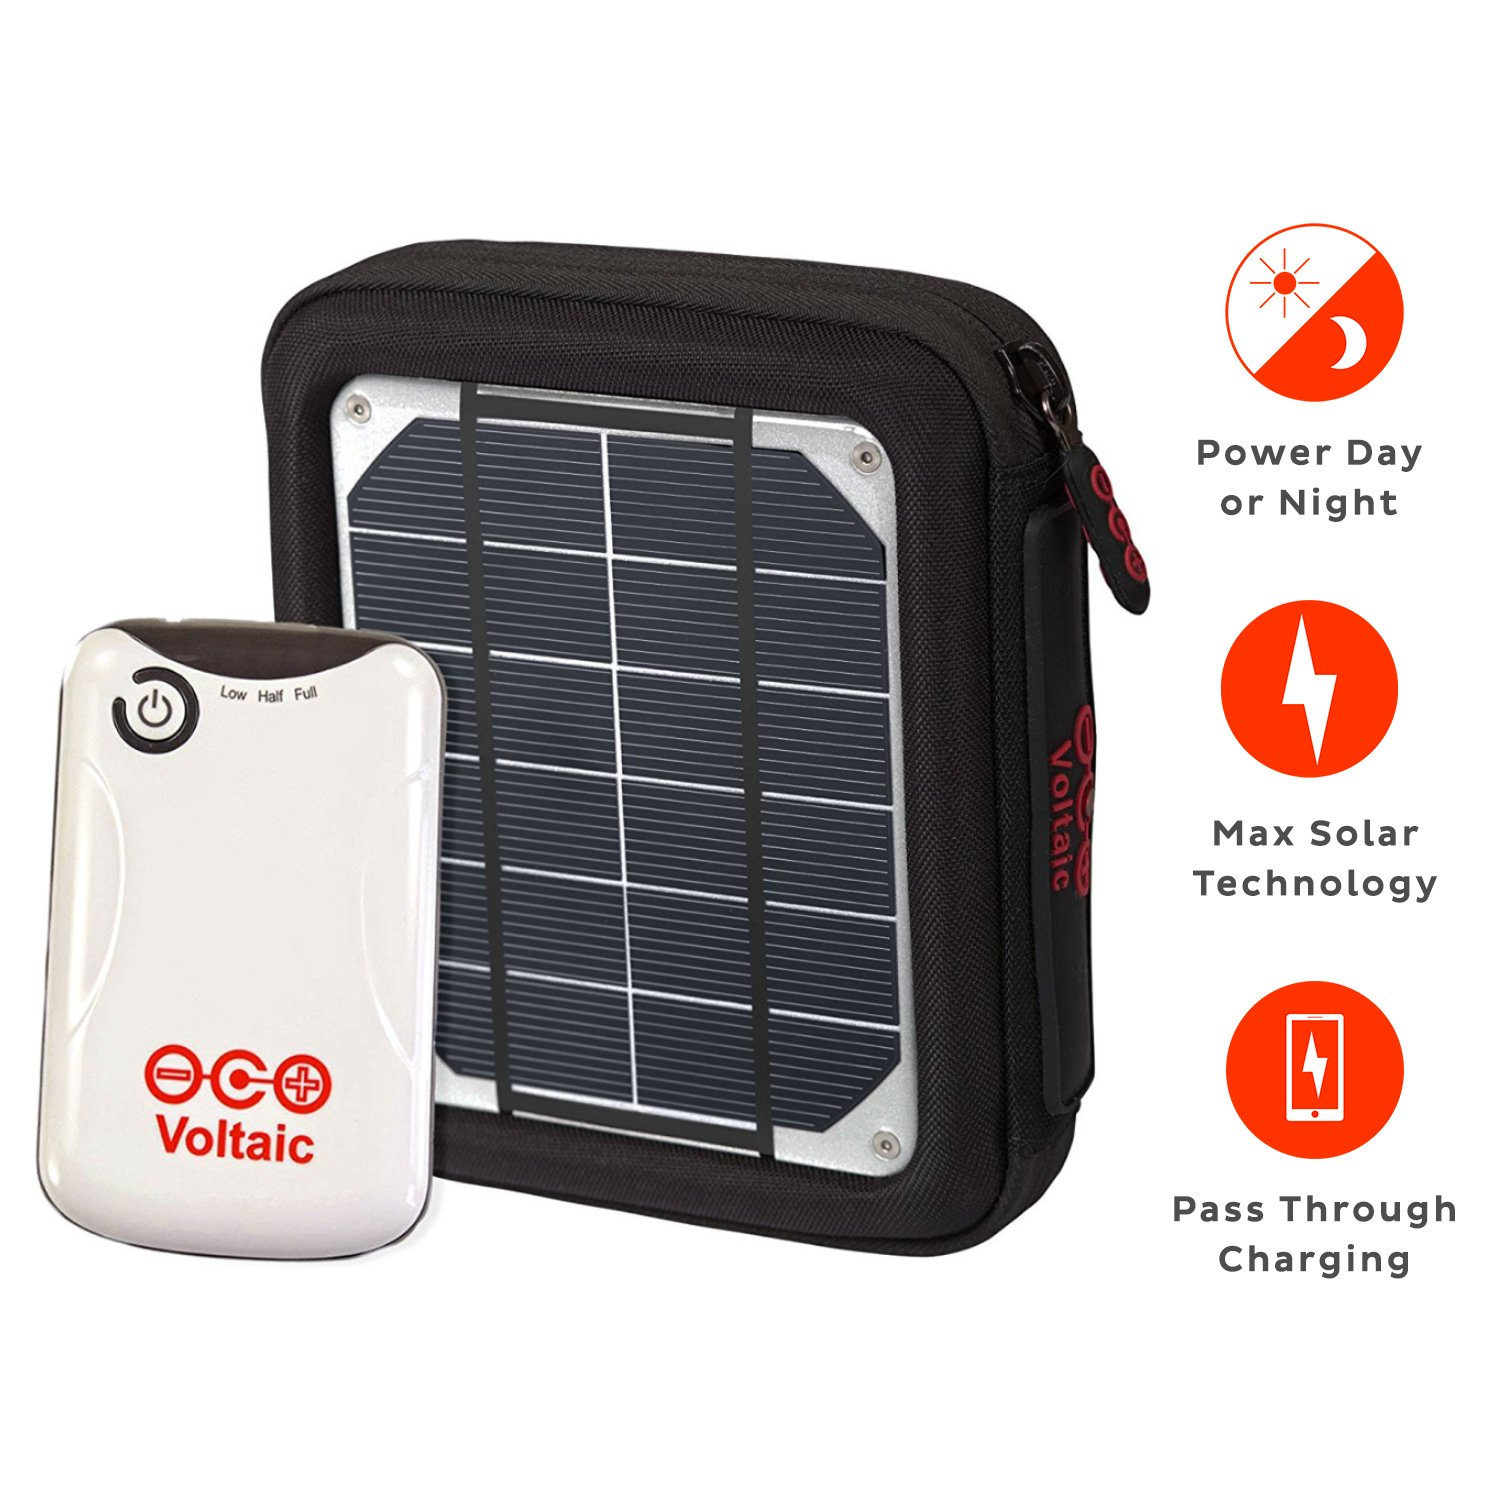 Voltaic Systems Amp Portable Rapid Solar Charger With Jpg 1500x1500 Solar  Powered Space Heater